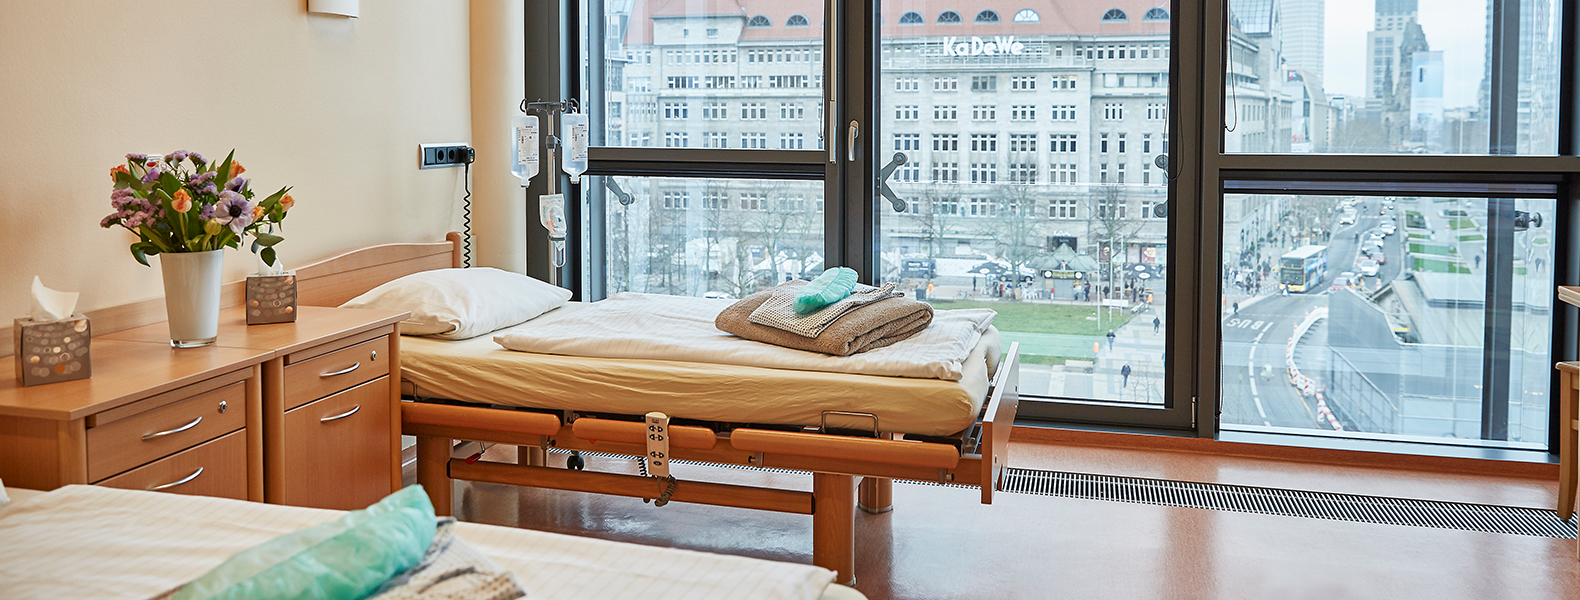 Our patient rooms with view